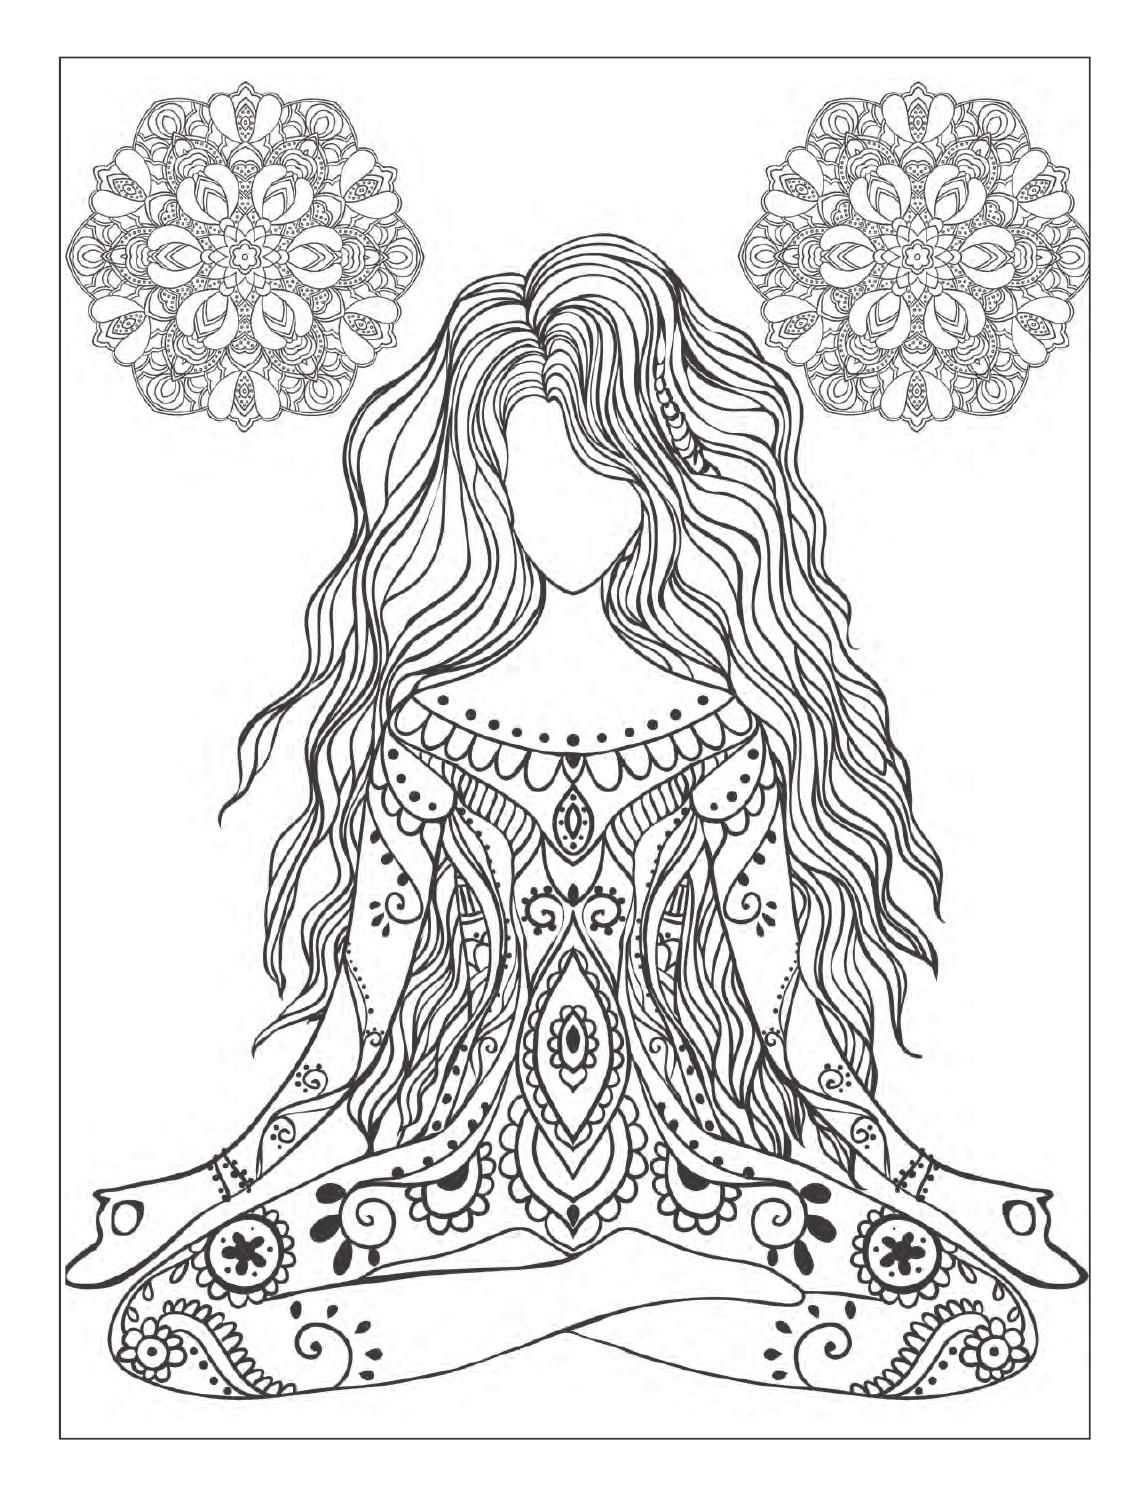 free meditation coloring pages - photo#4